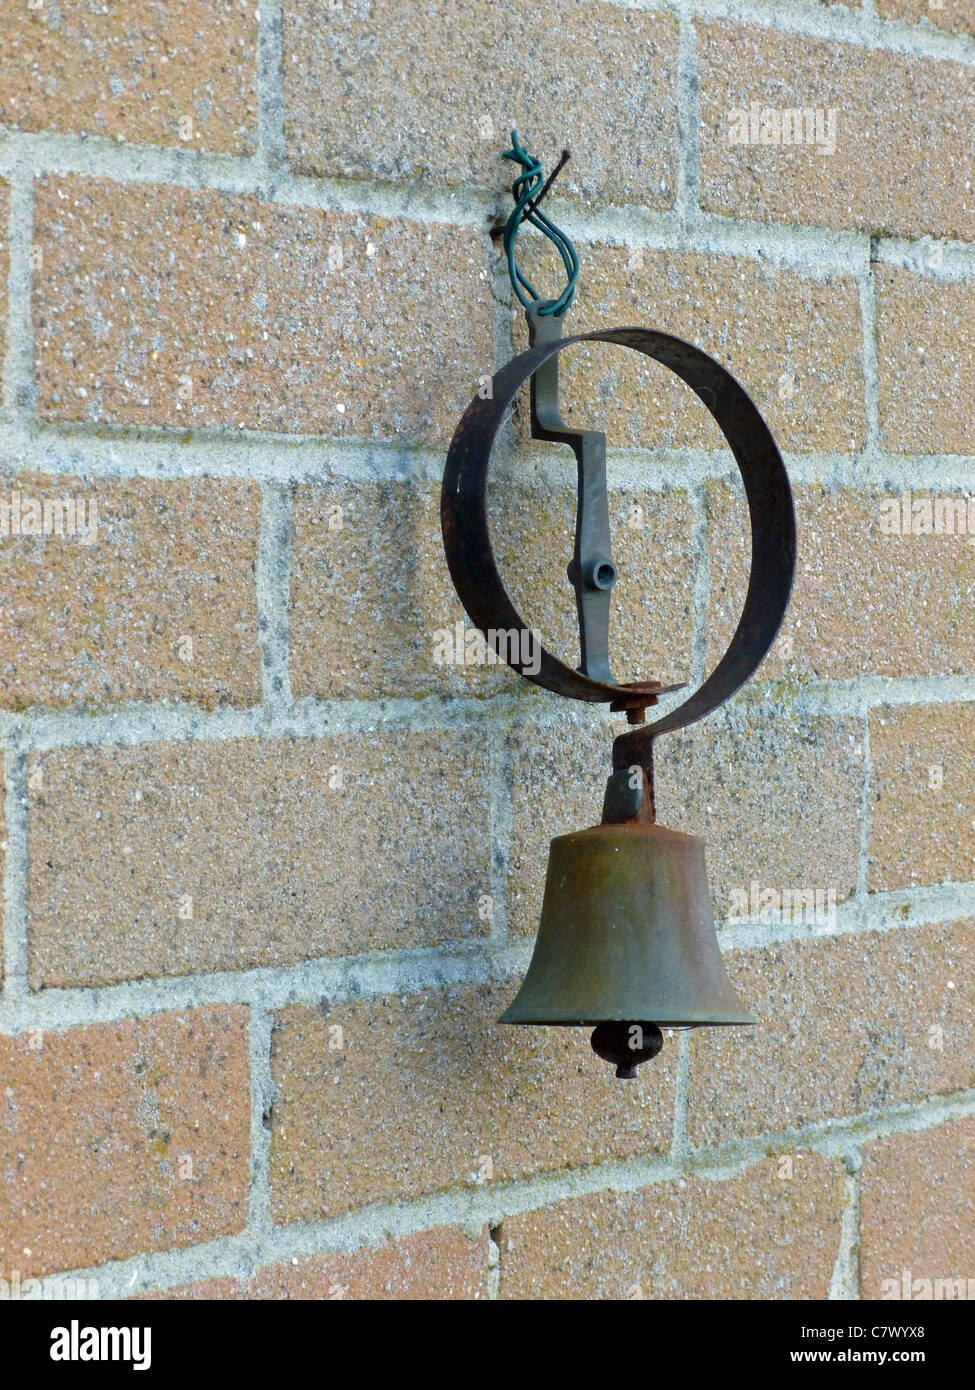 An Old Servant's Bell - Stock Image